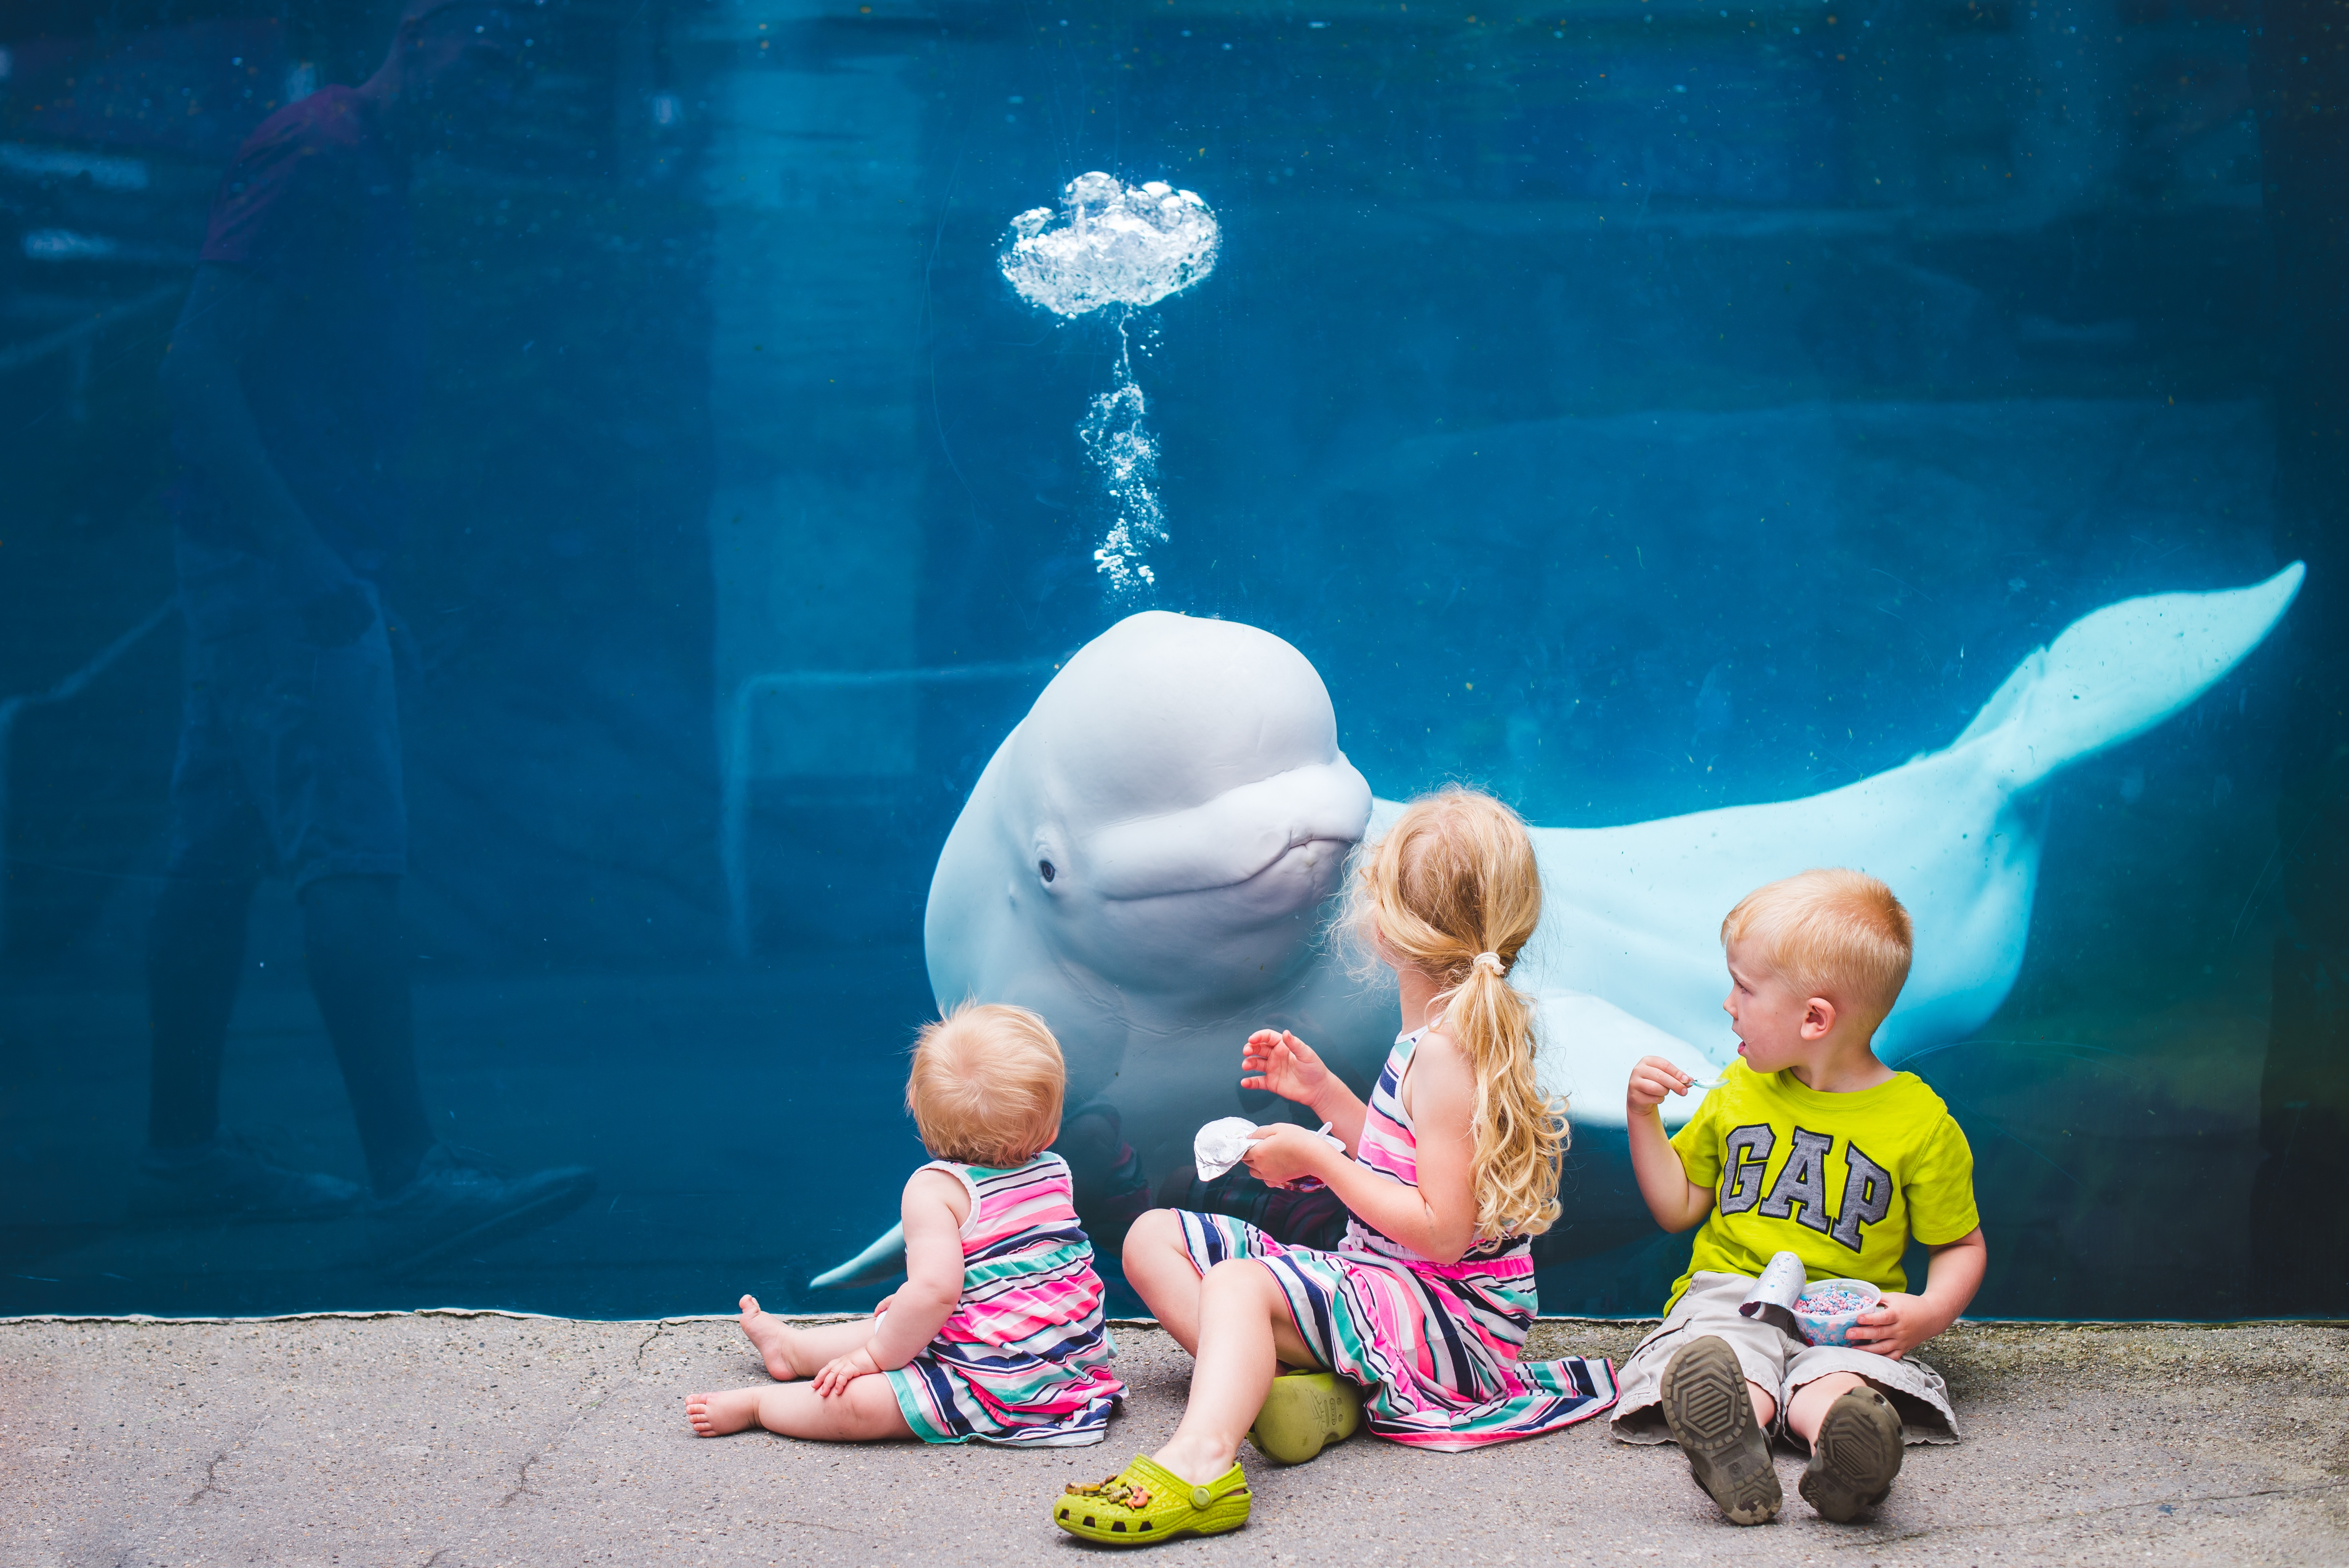 Kristen Alise Photography beluga whale childrens portrait